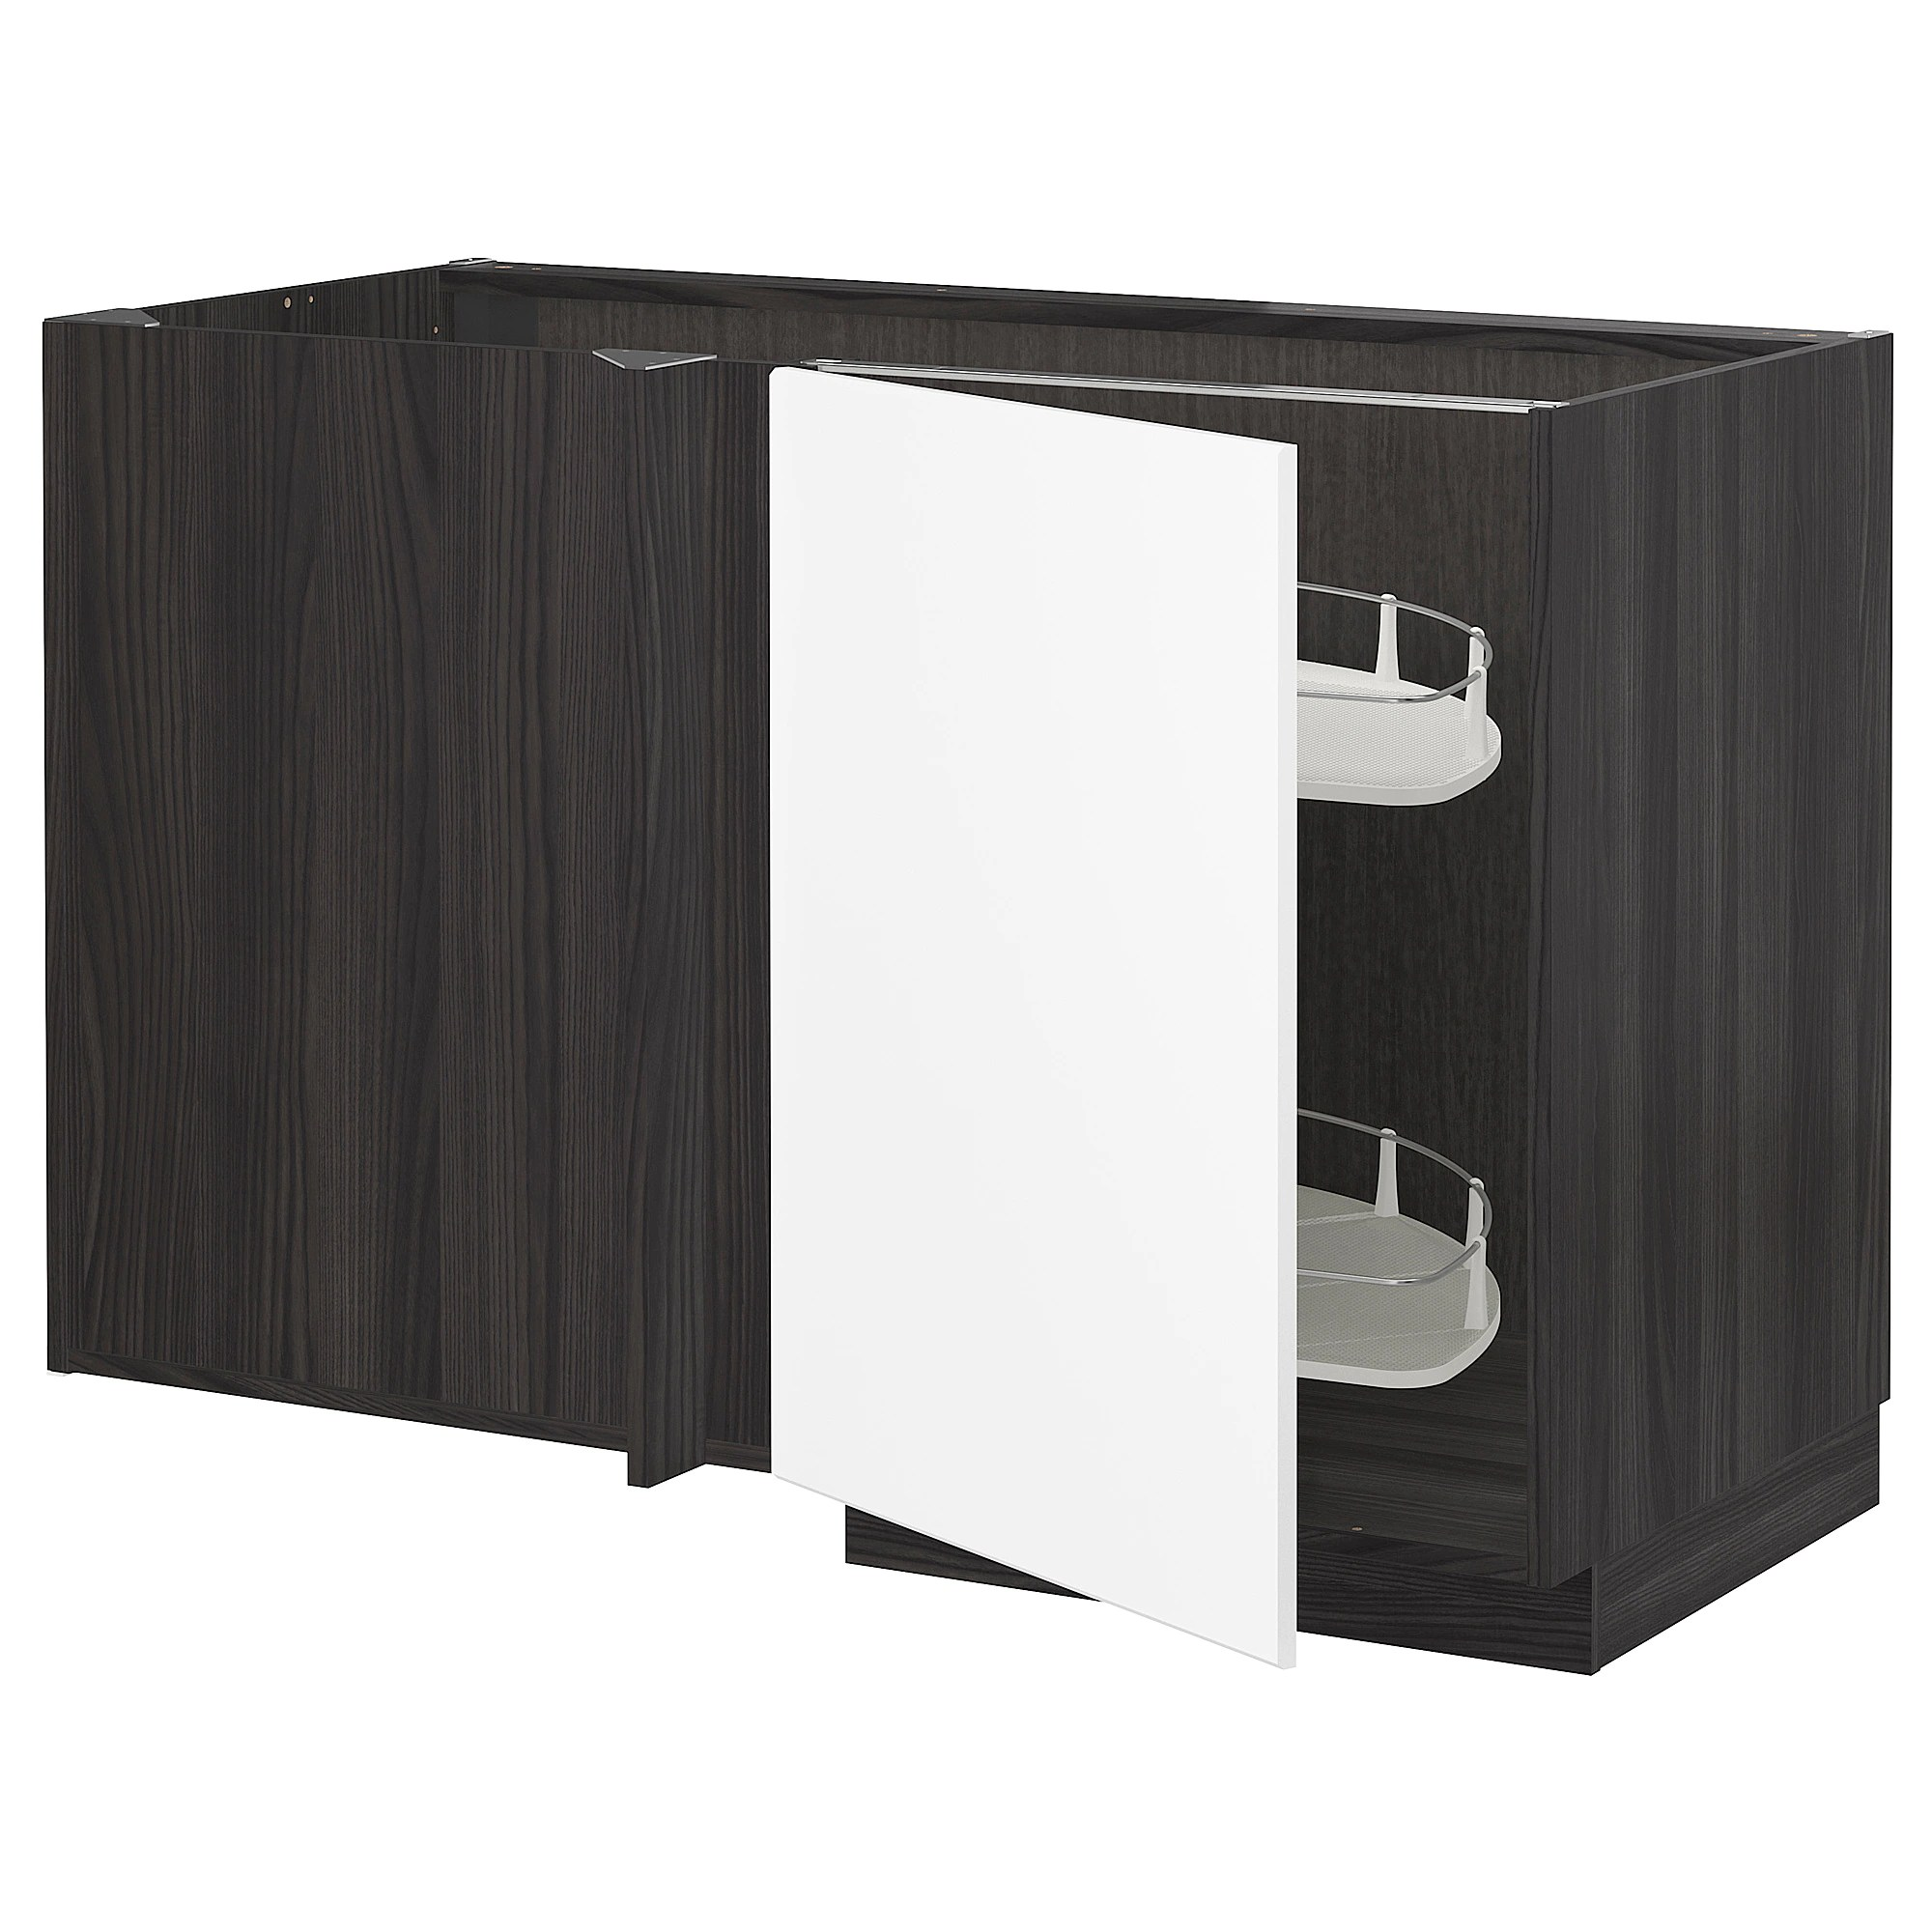 Cucina Ikea Tingsryd Jarsta Metod Corner Base Cab W Pull Out Fitting Black Kungsbacka Matt White